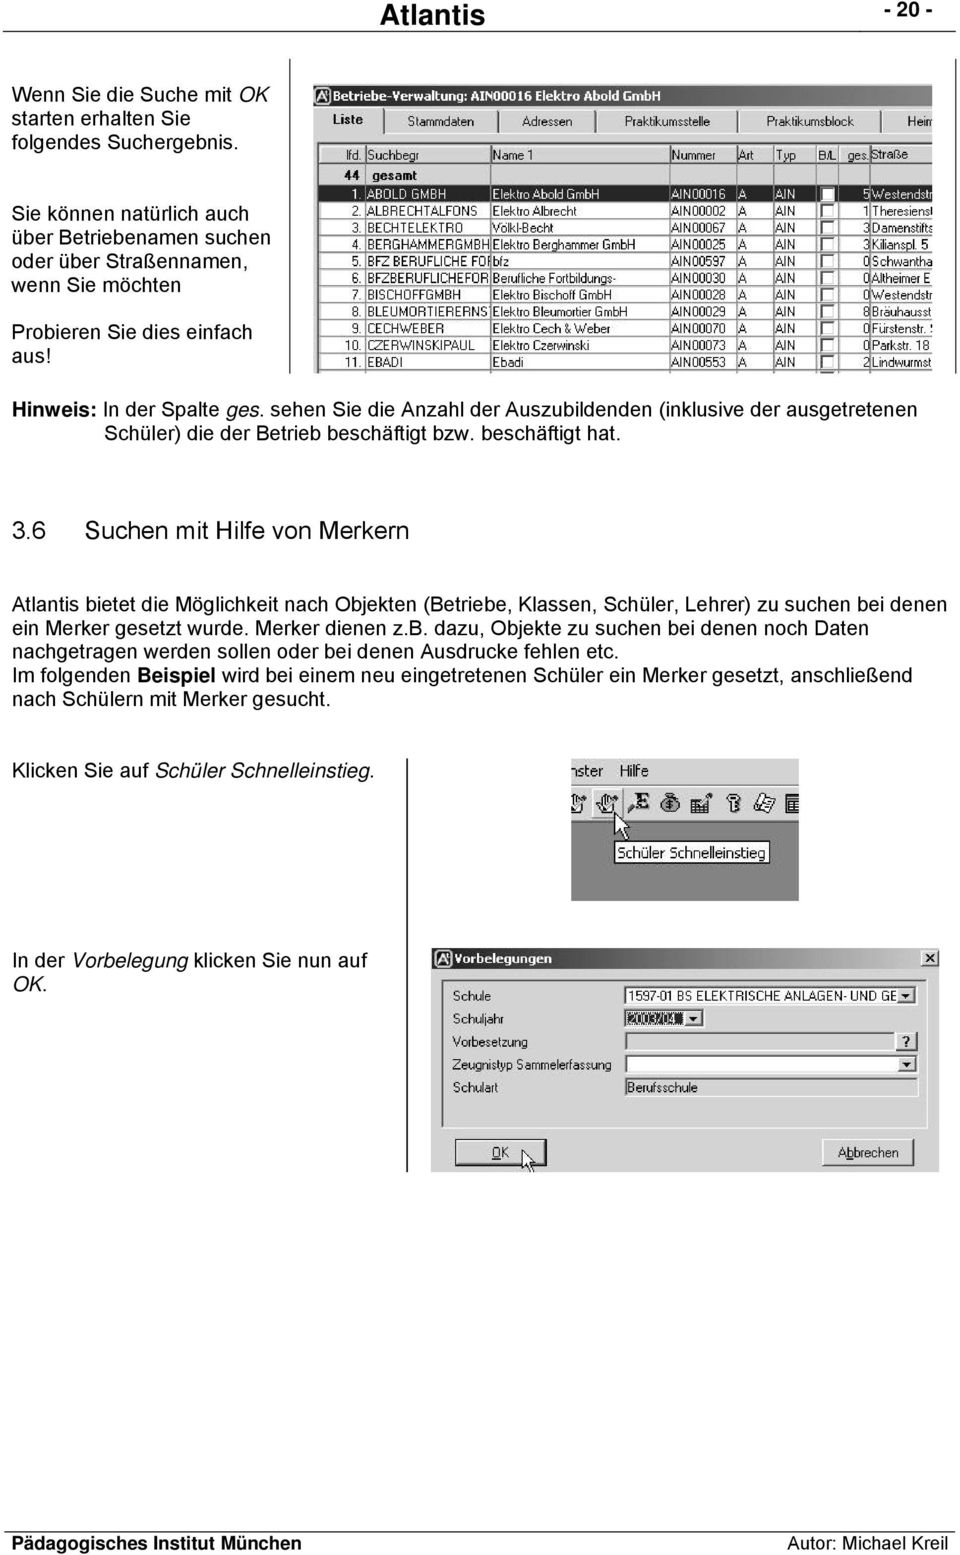 Fantastisch Leere Klassenlistenvorlage Fotos - Entry Level Resume ...